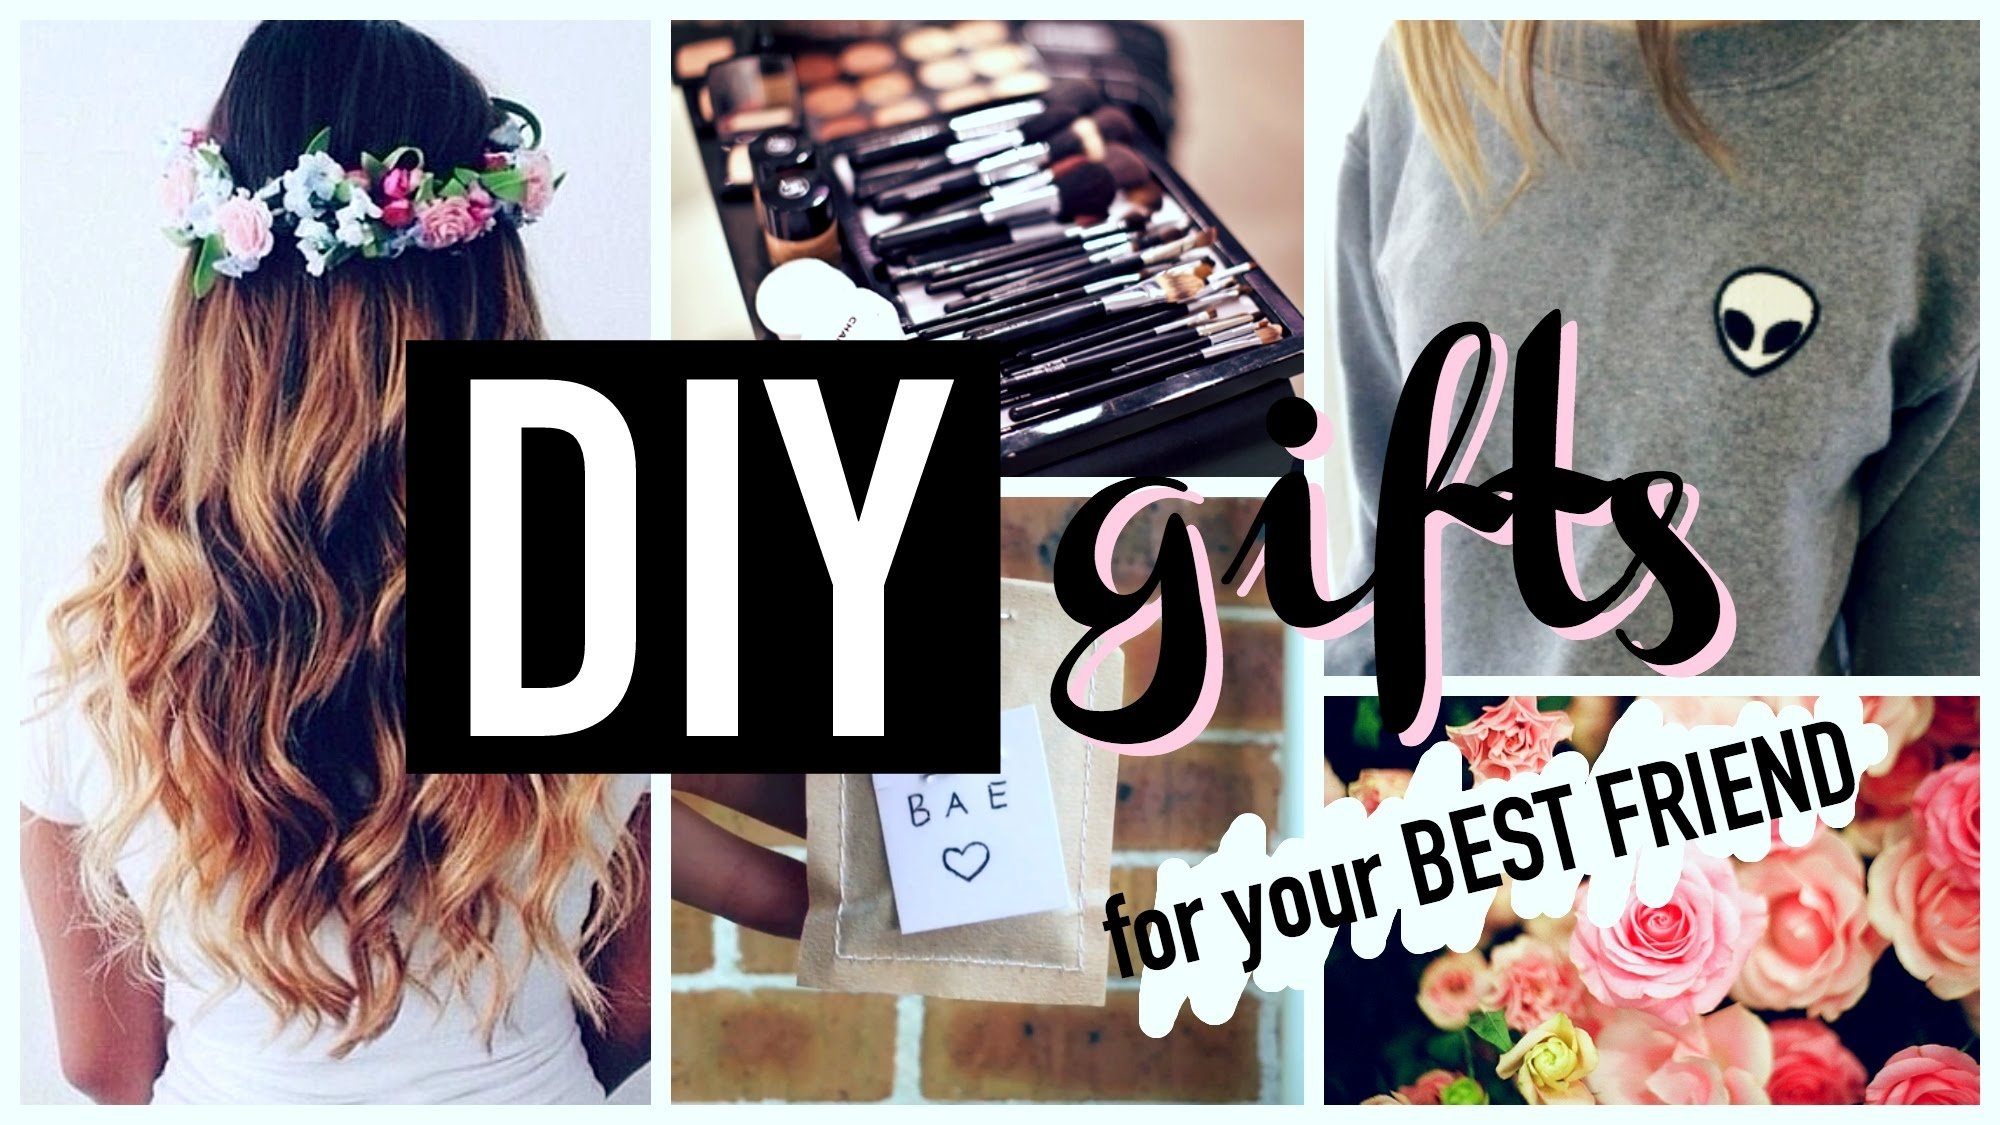 10 Lovely Birthday Gift Ideas For Best Friend Female Diy Teenagers Friends